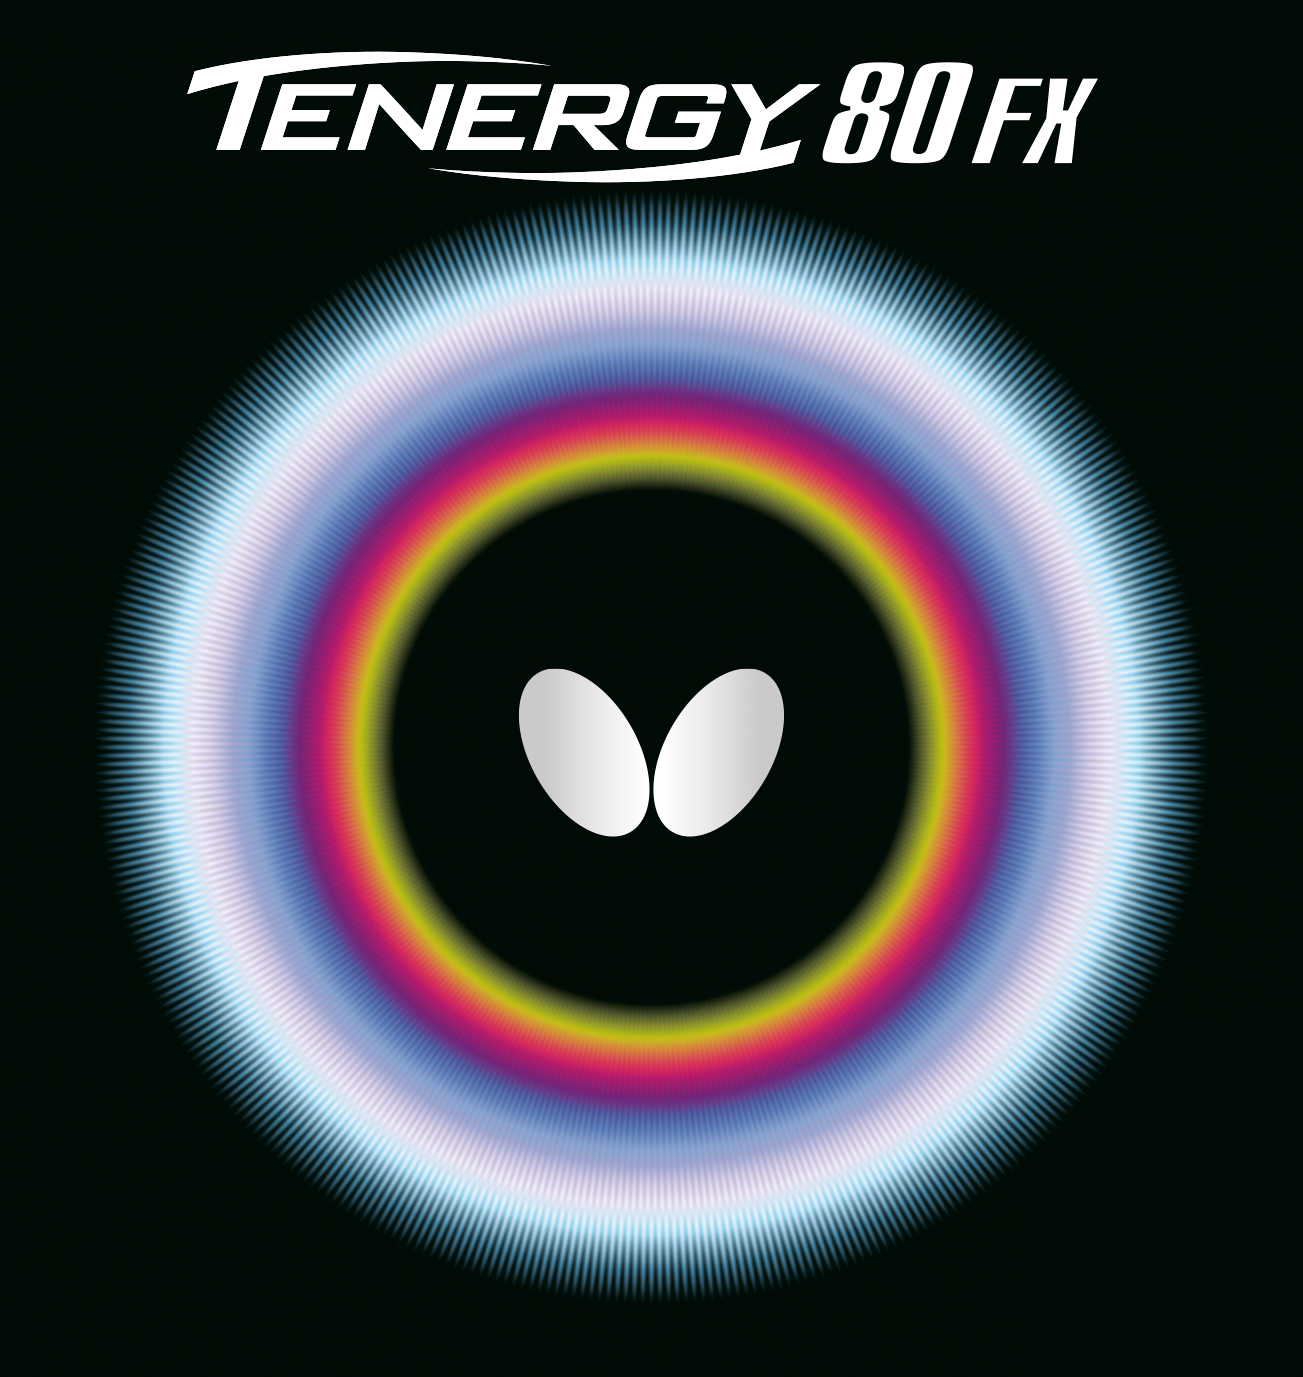 BUTTERFLY - potah TENERGY 80 fx